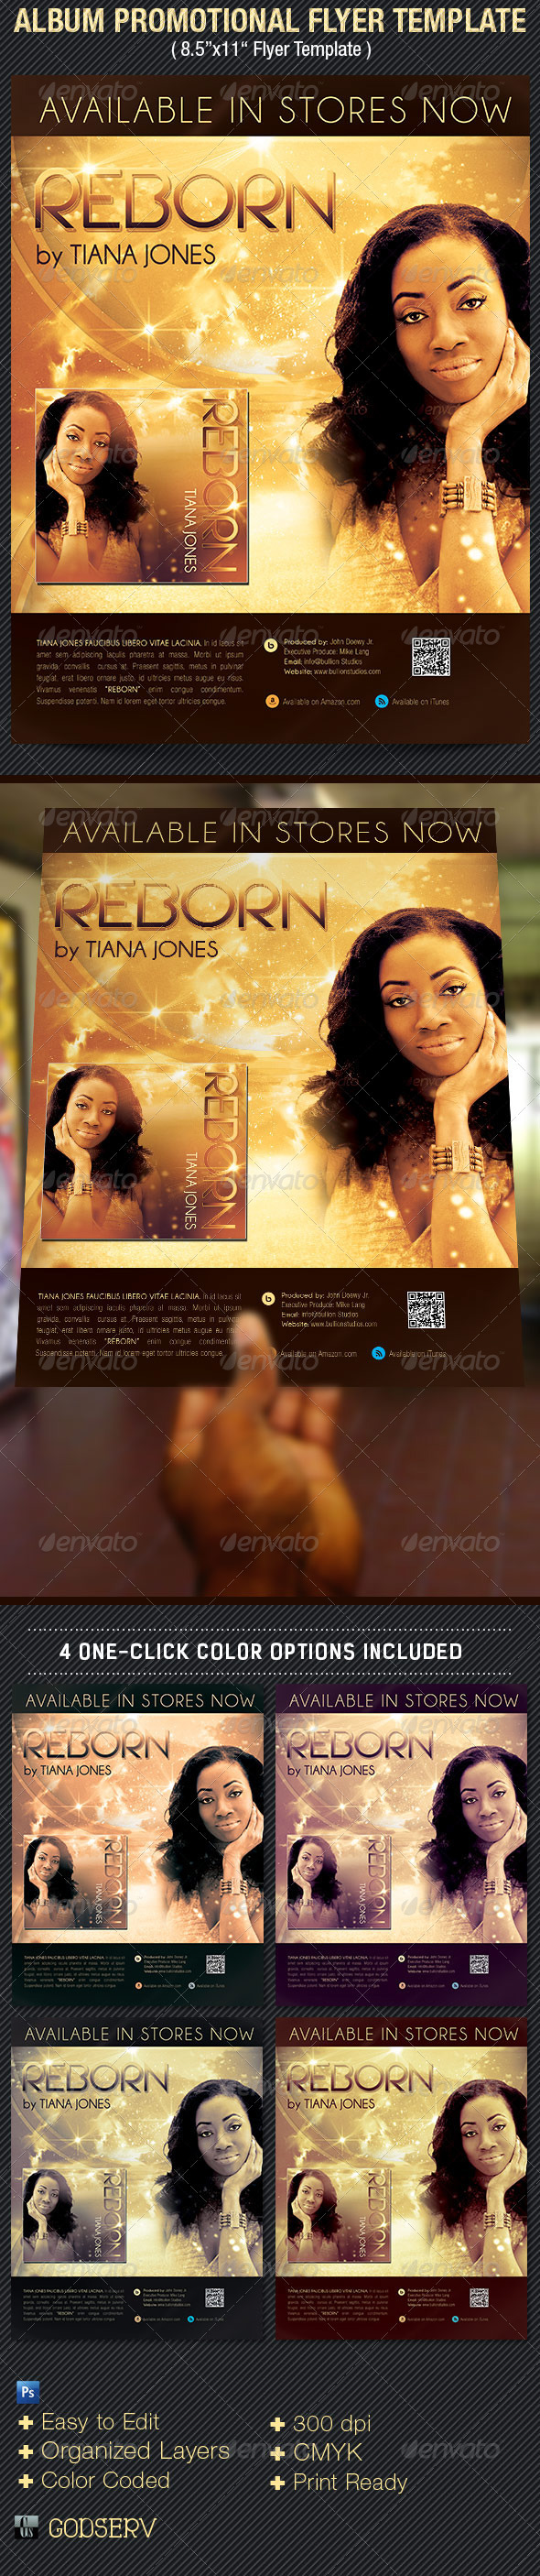 album release promotional flyer template on behance